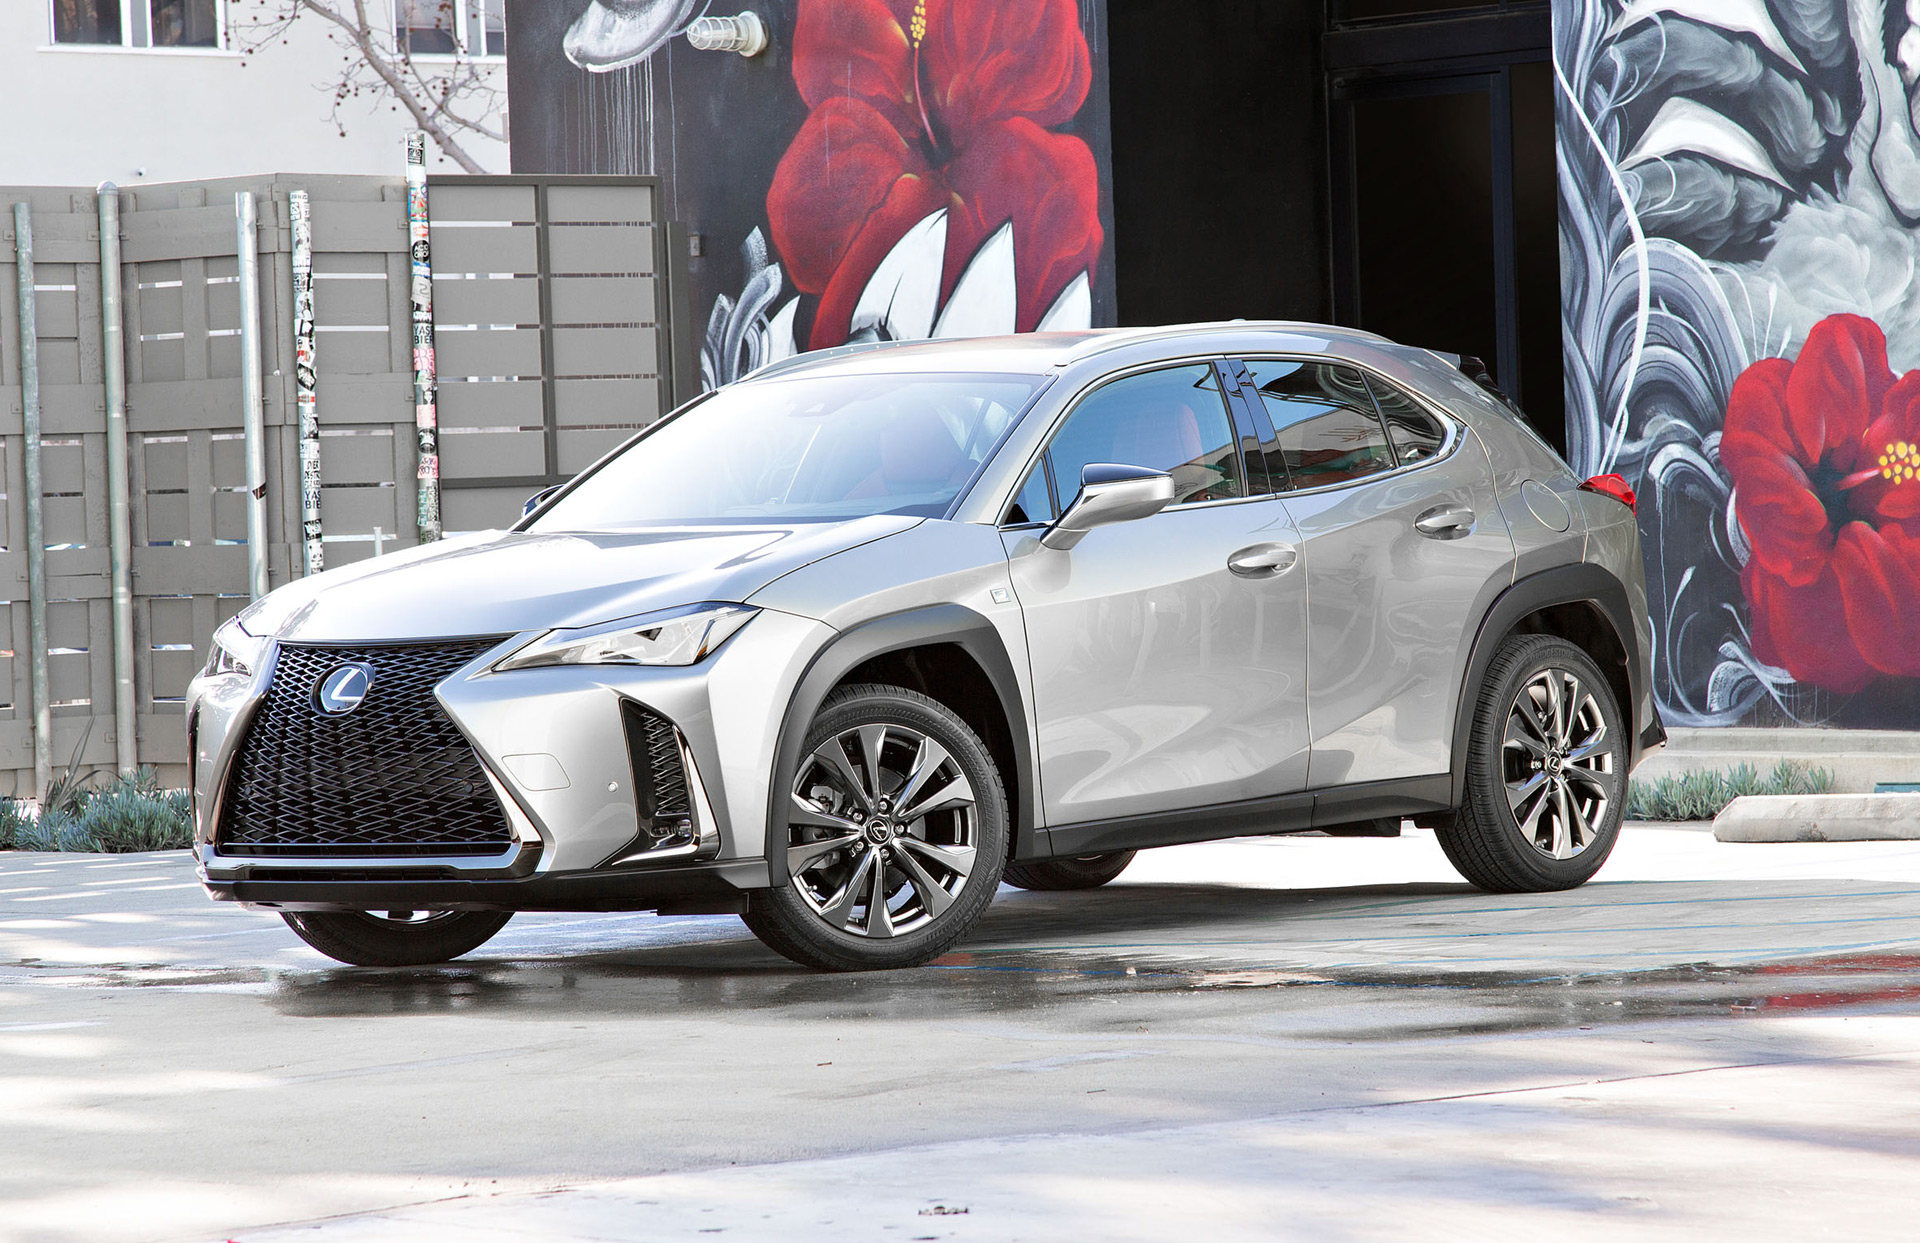 Ux Plug 2019 Lexus Ux Small Suv Emerges In Us Trim Hybrid Included At Ny